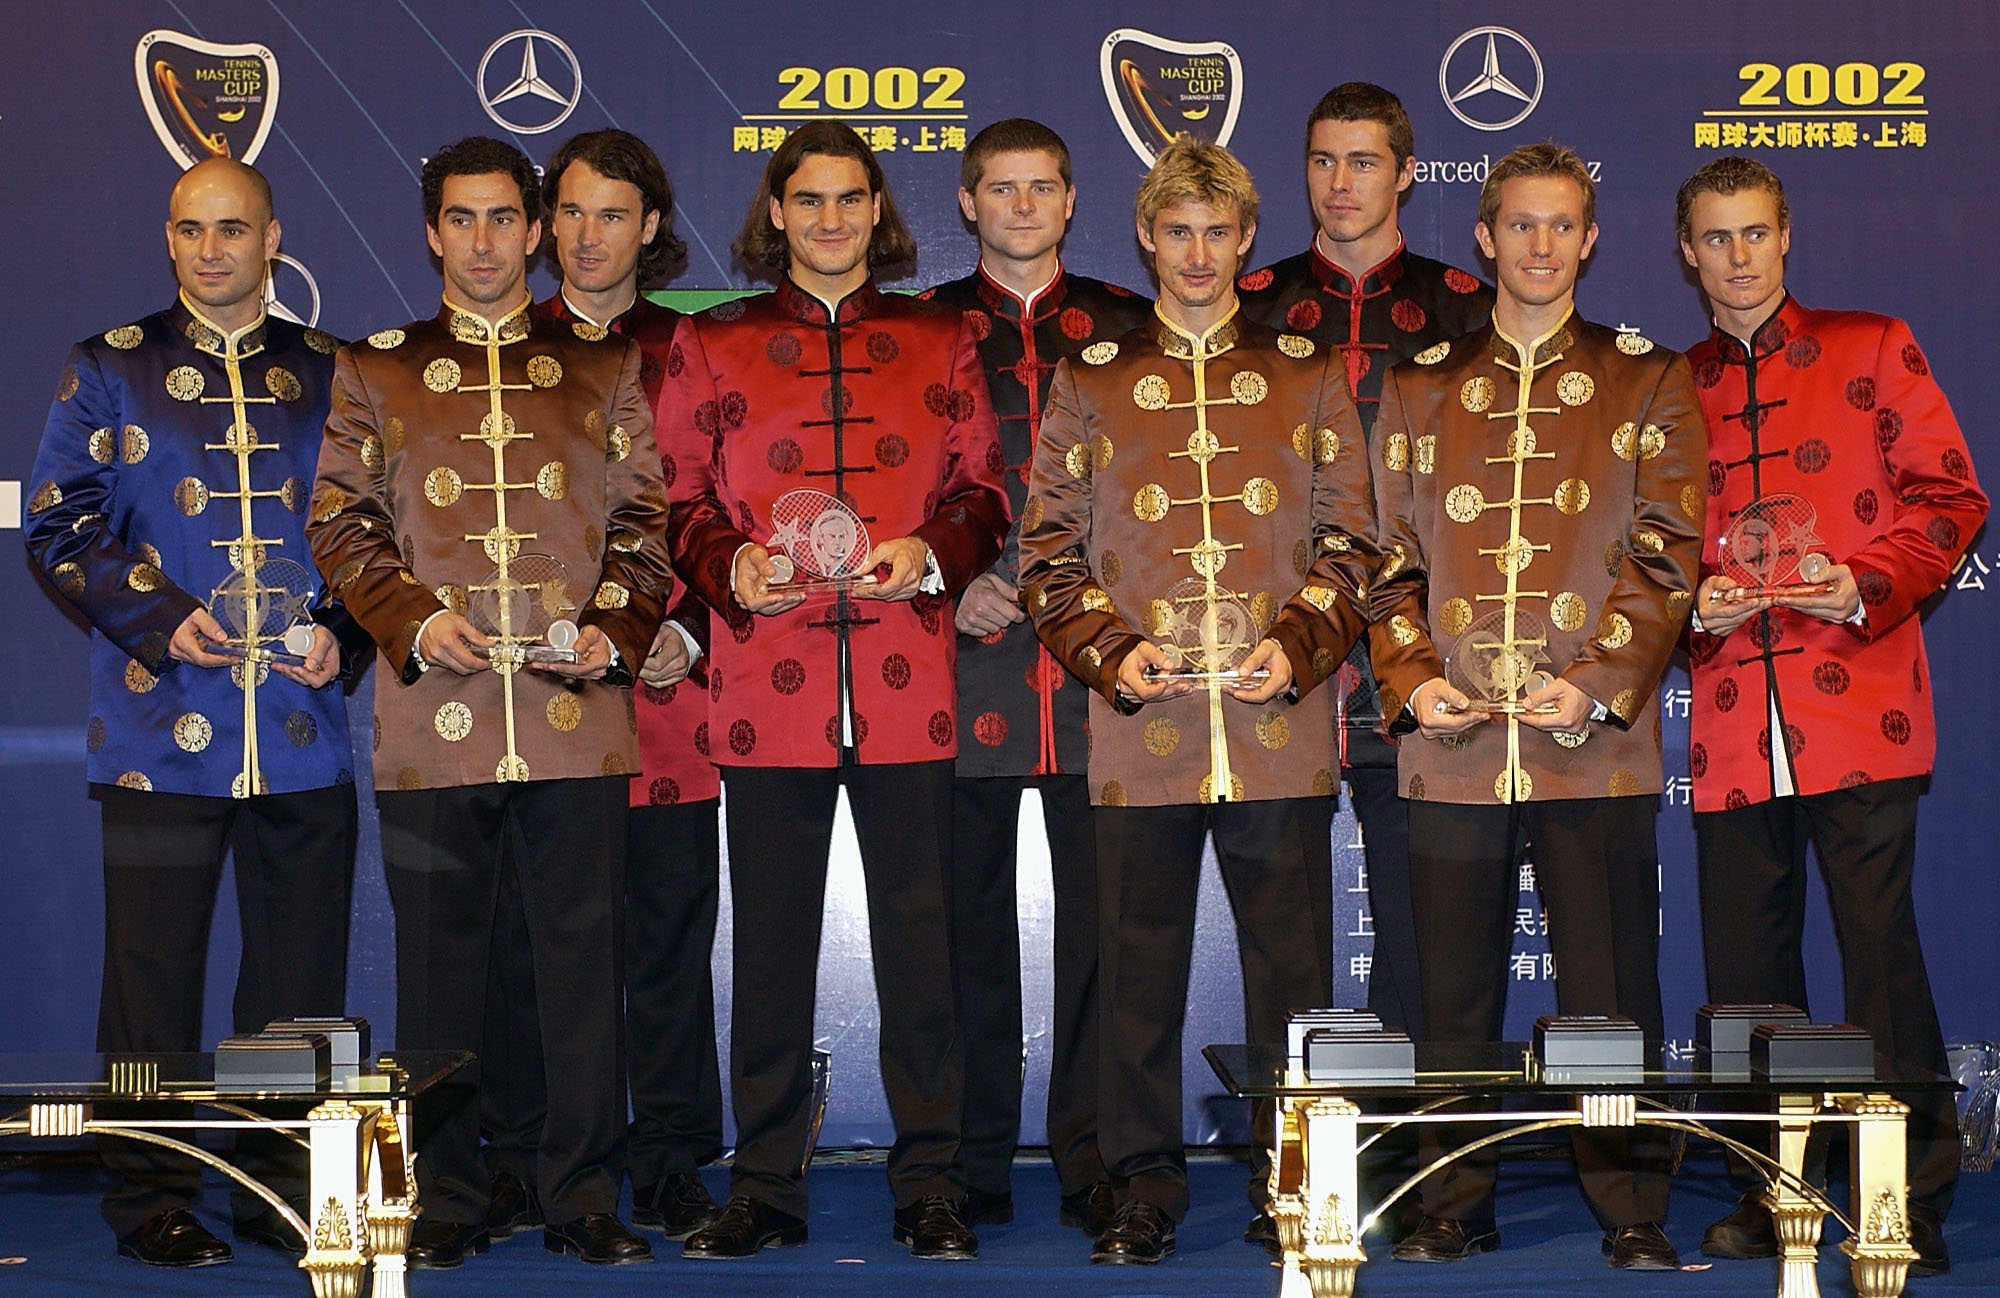 The top nine players of the 2002 ATP Champions Race line up for a team photograph during the Introduction Ceremony for the Tennis Masters Cup.